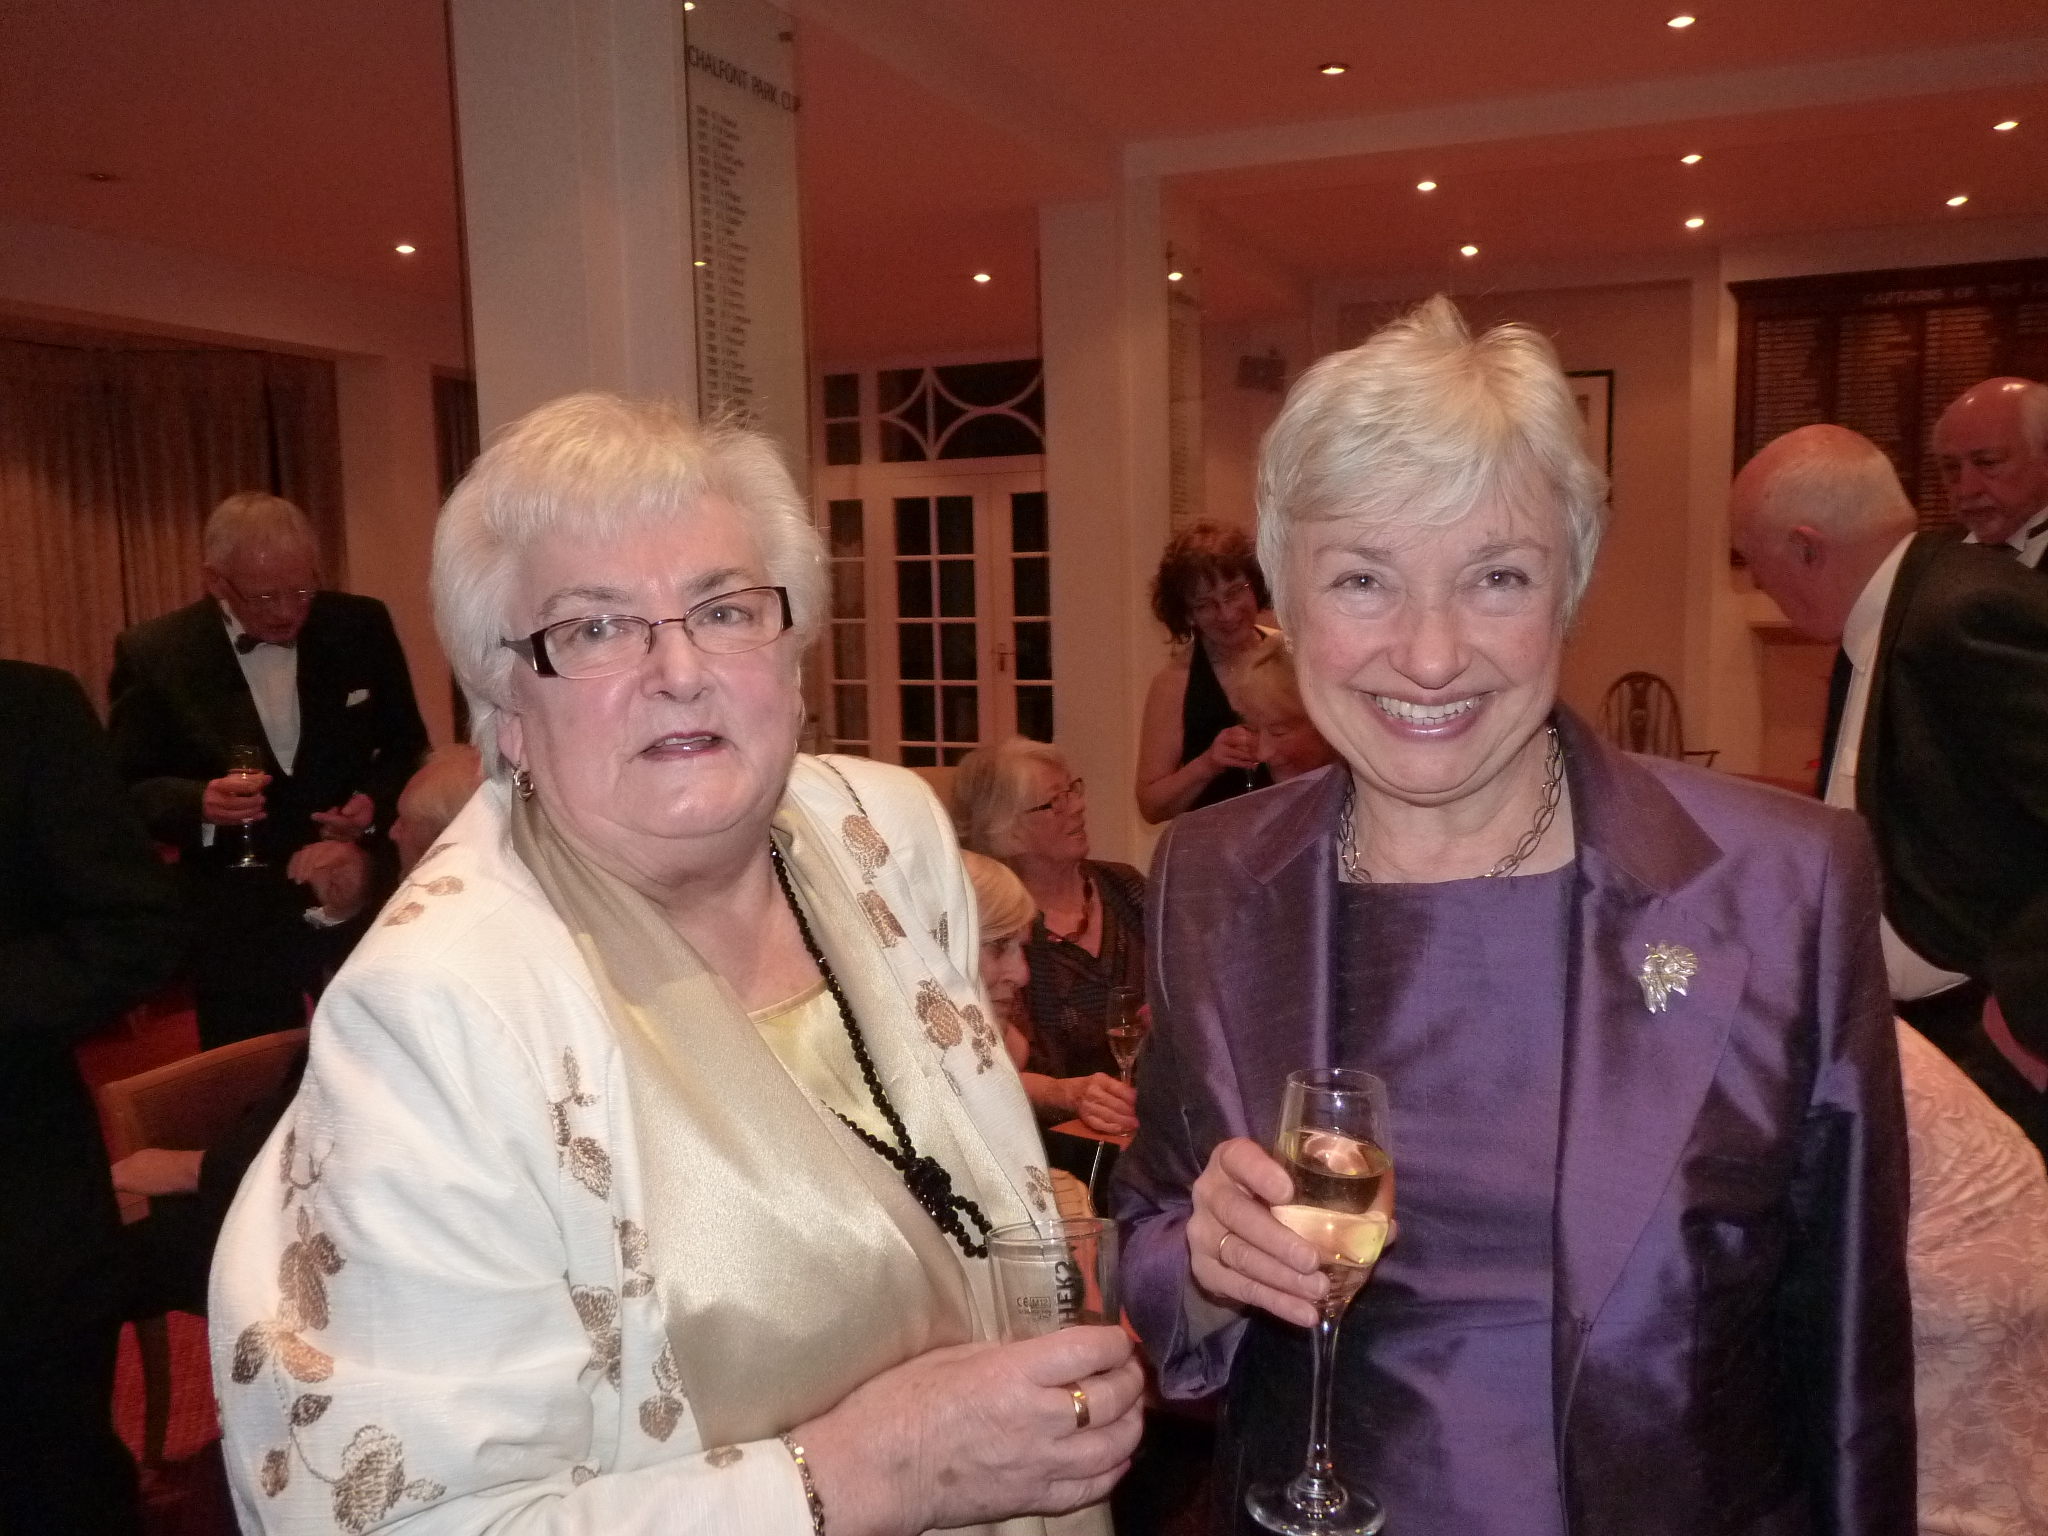 Margaret Payne and Jayne Pegler